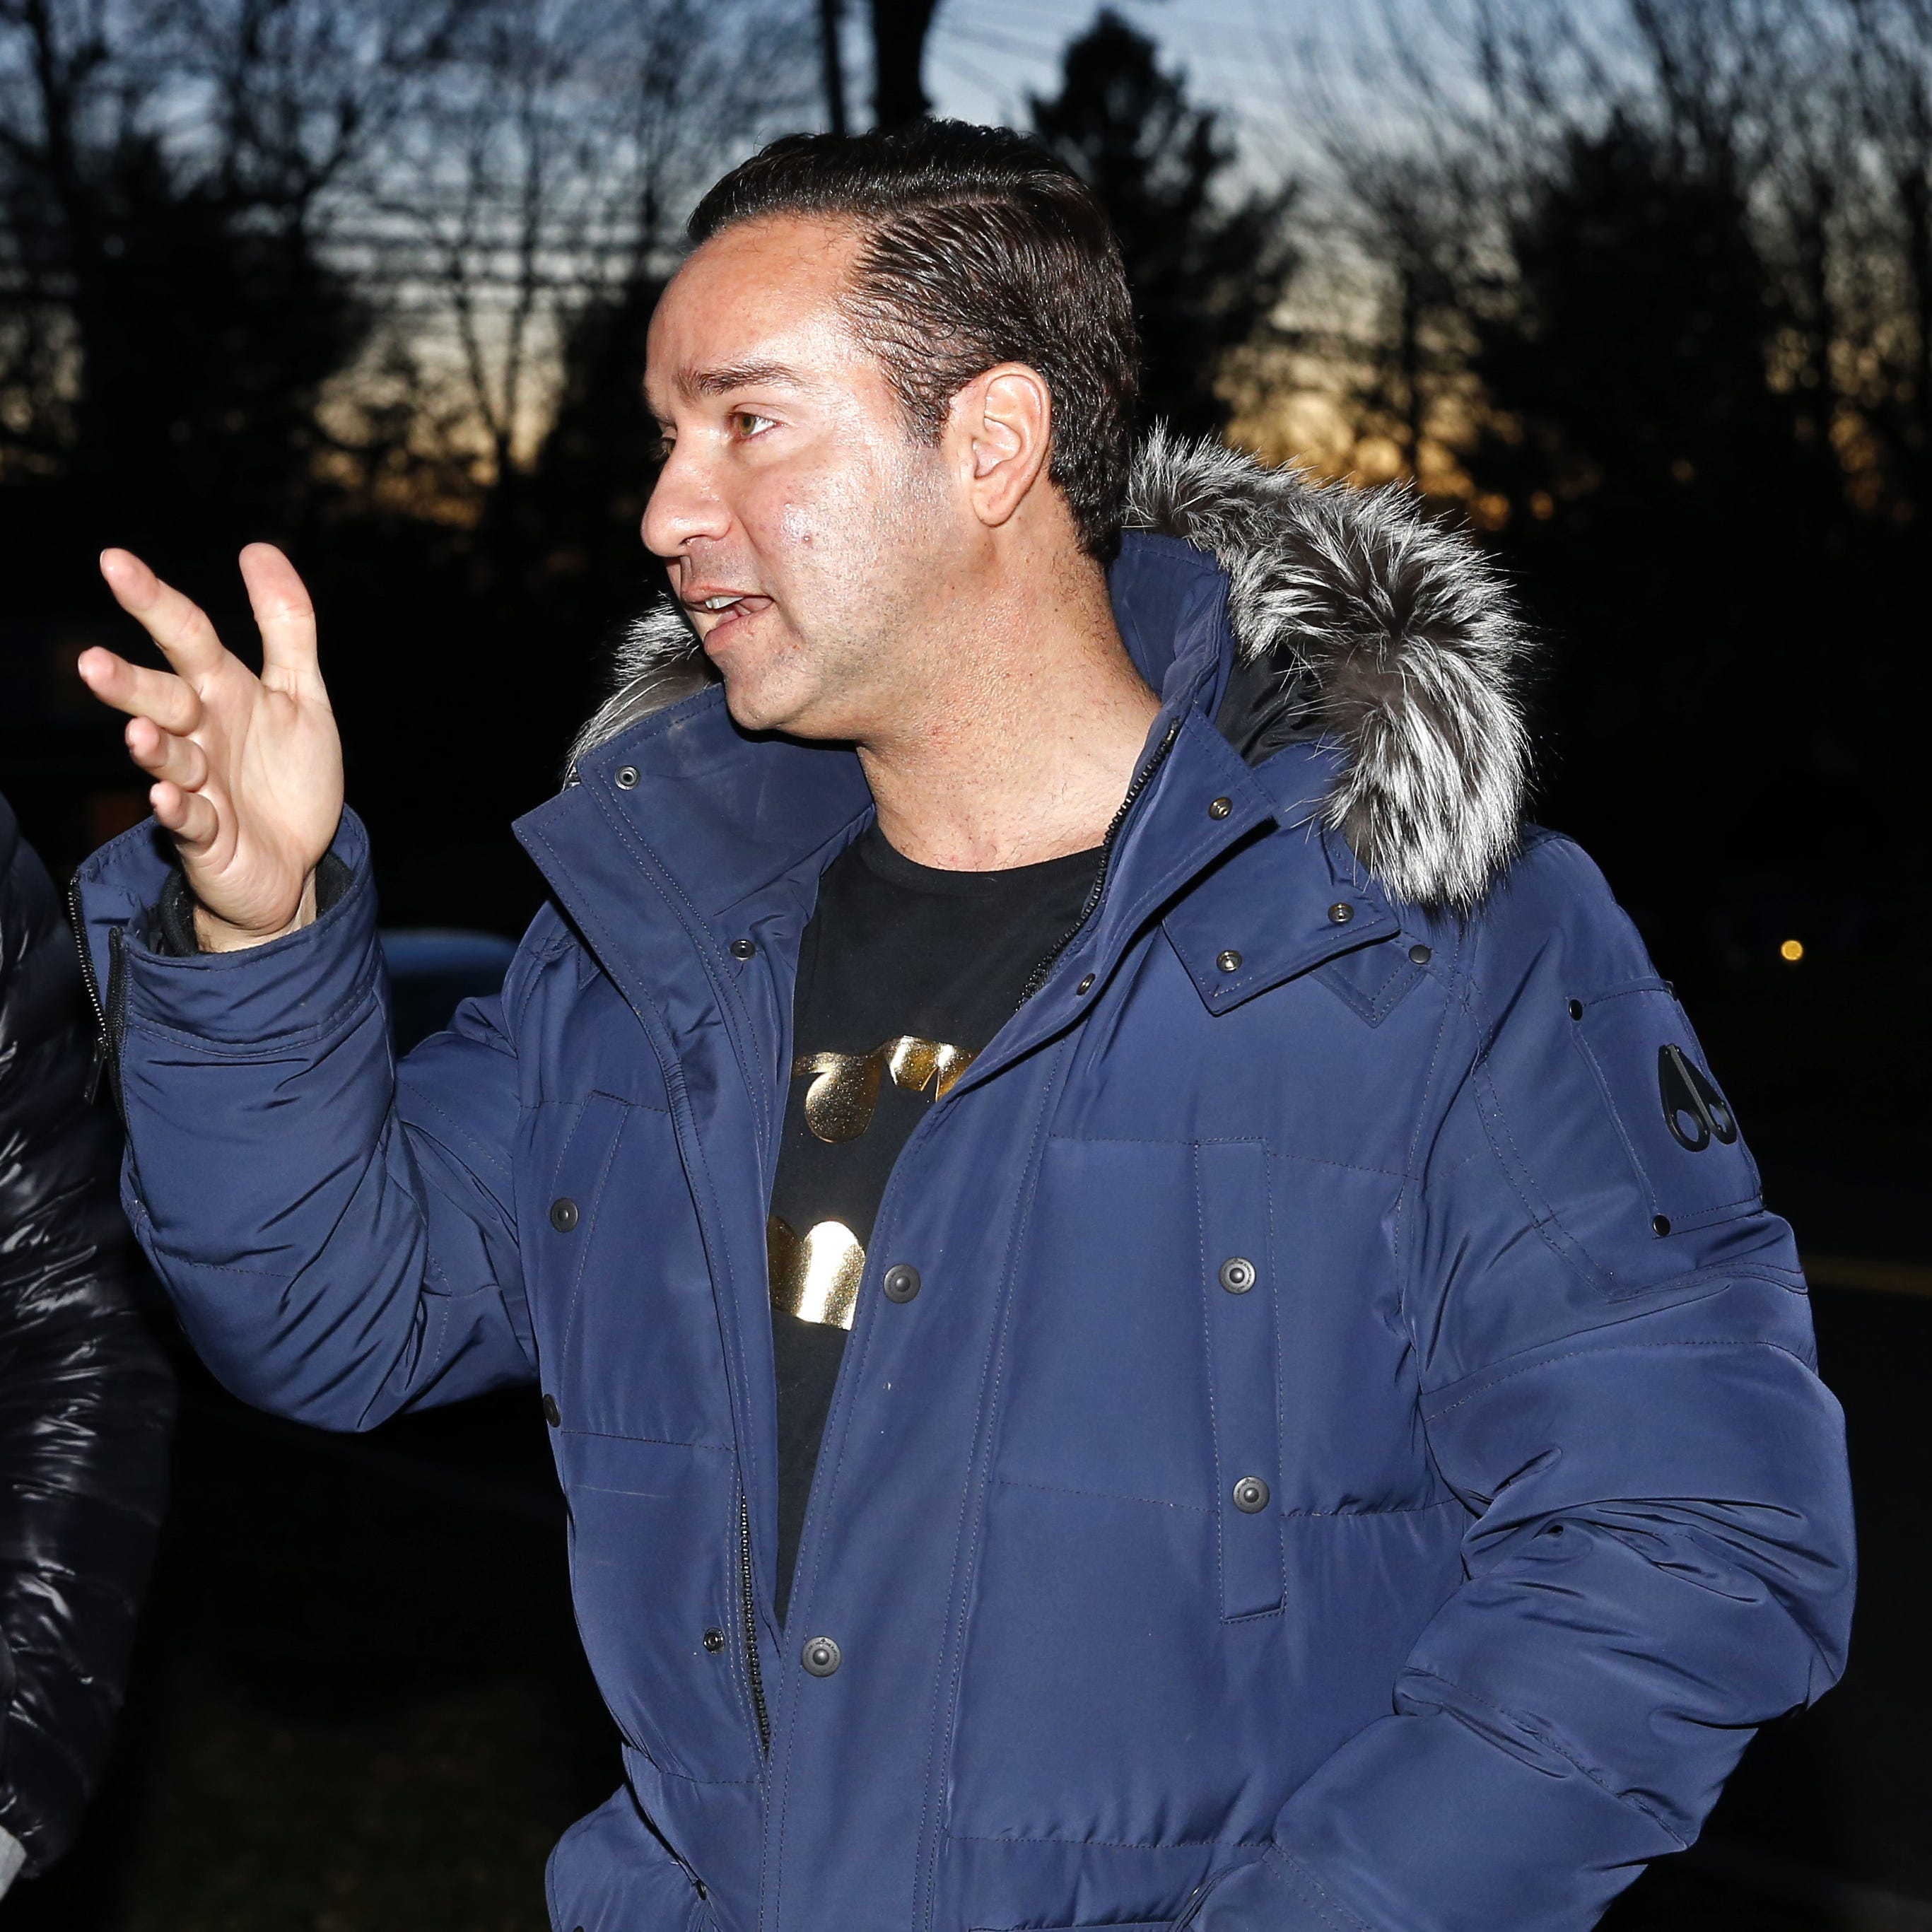 Jersey Shore: Mike 'The Situation' Sorrentino takes stoic road to prison